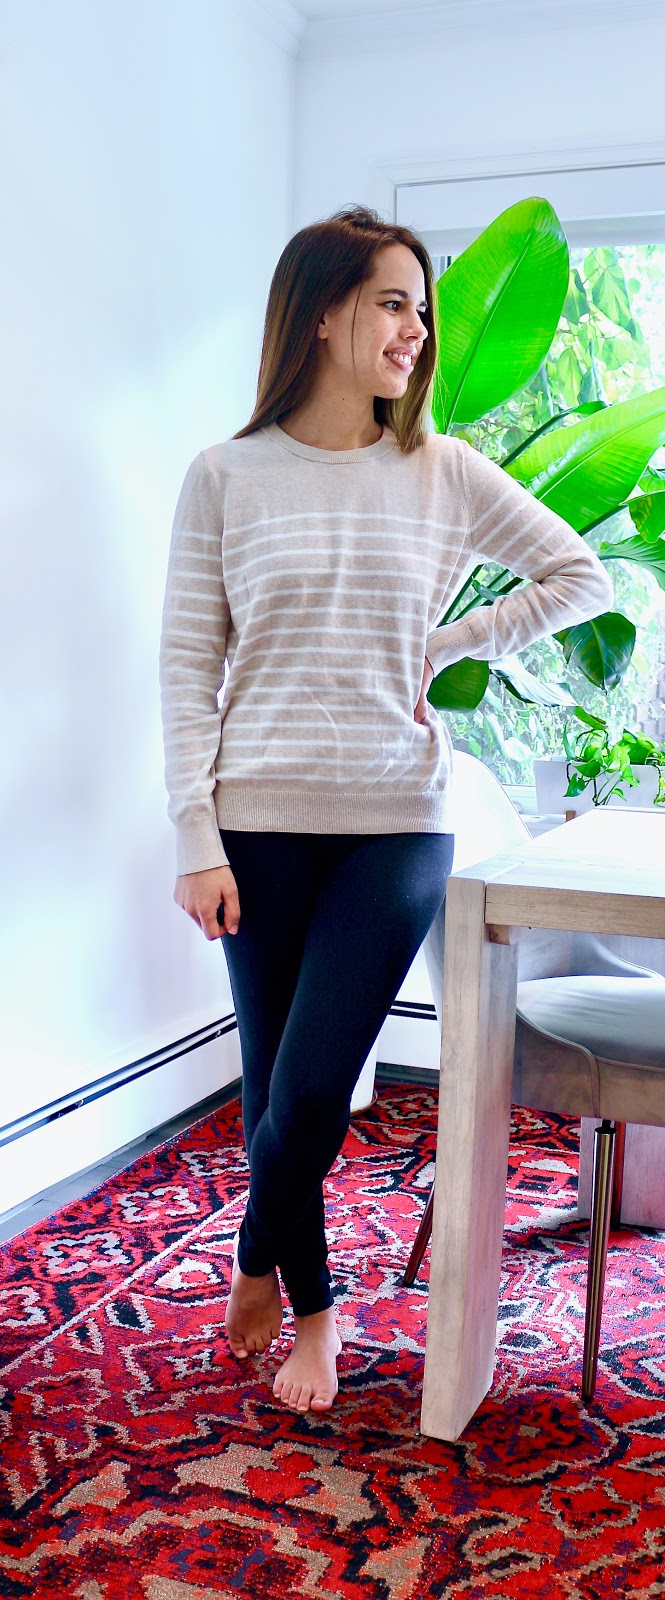 Jules in Flats - Beige + White Striped Sweater with Leggings (Easy Work from Home Outfit).jpeg